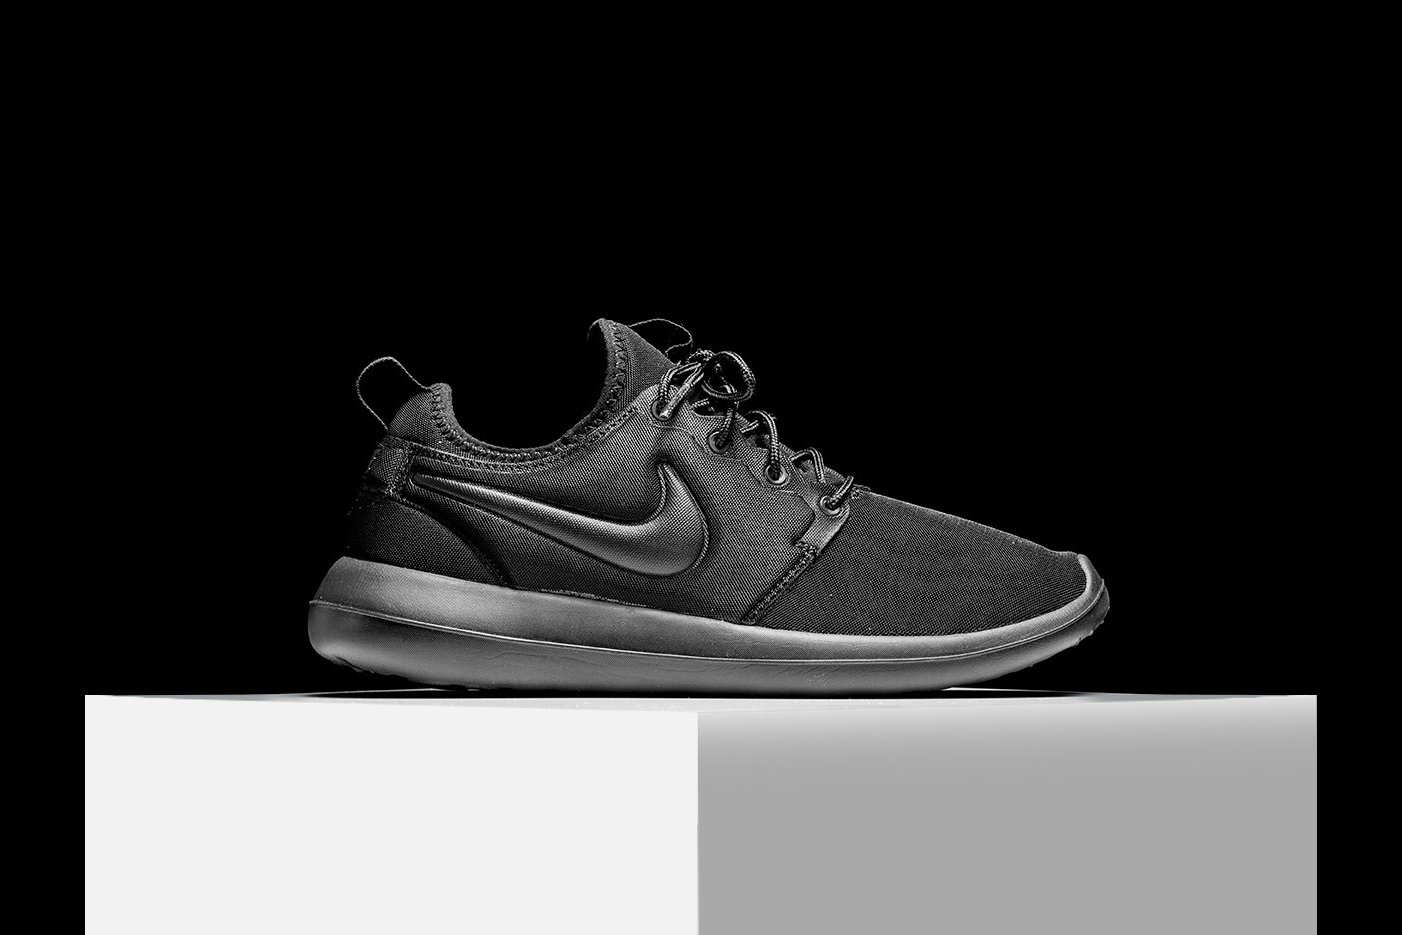 Nike Roshe Two in Black  Stuff by James Rooney from Wearables